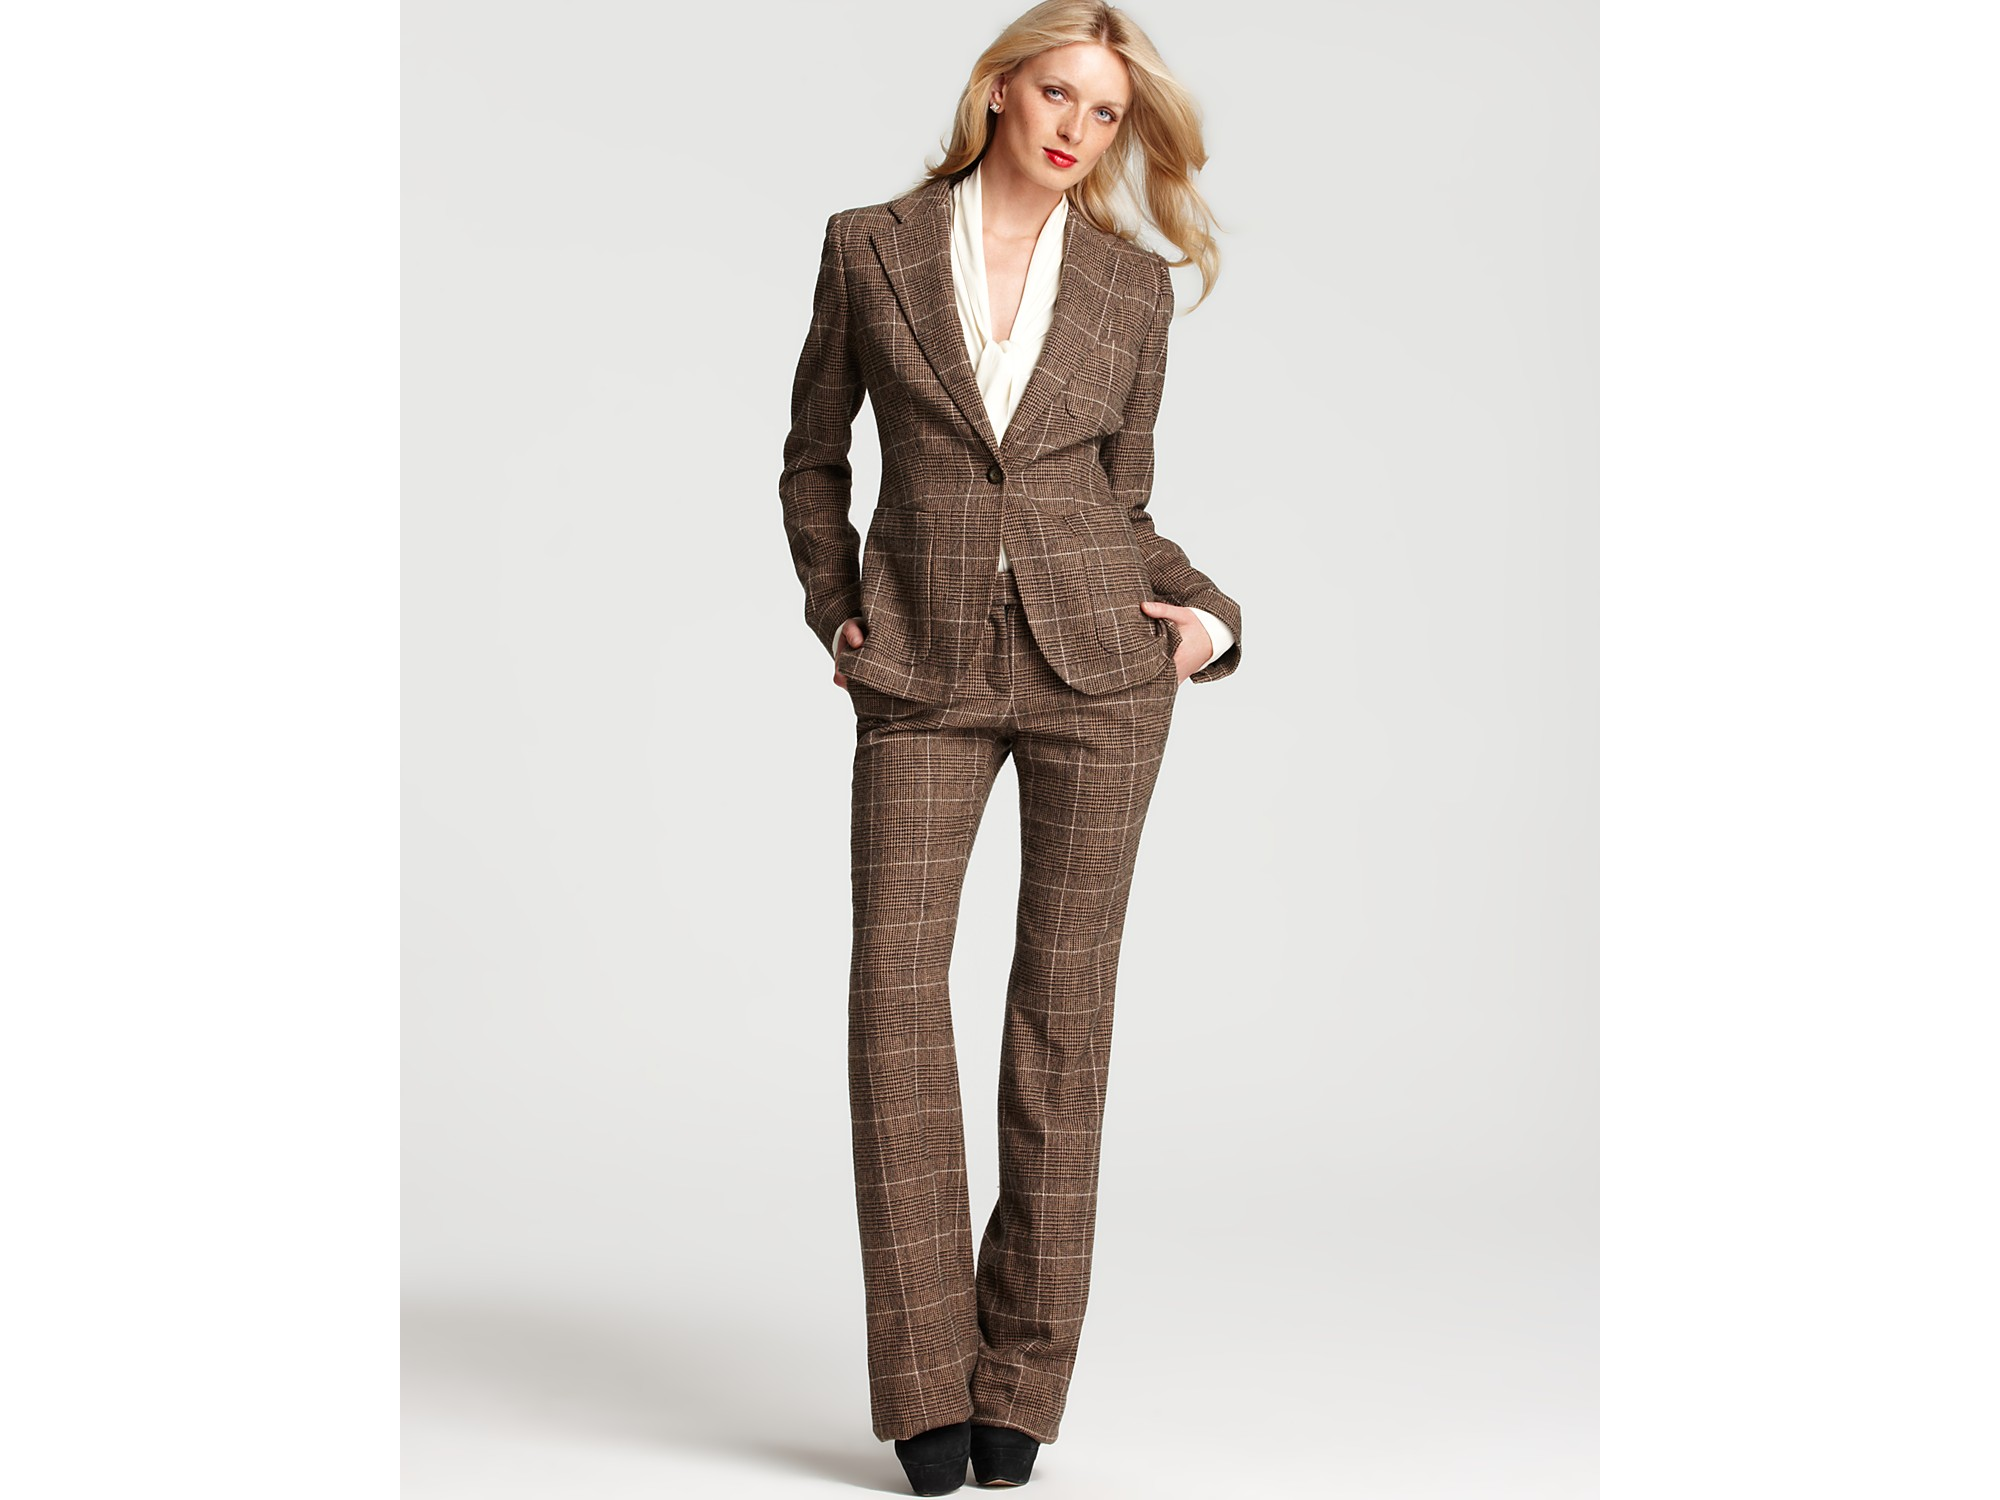 Rachel zoe Houndstooth Bootcut Pants in Brown | Lyst